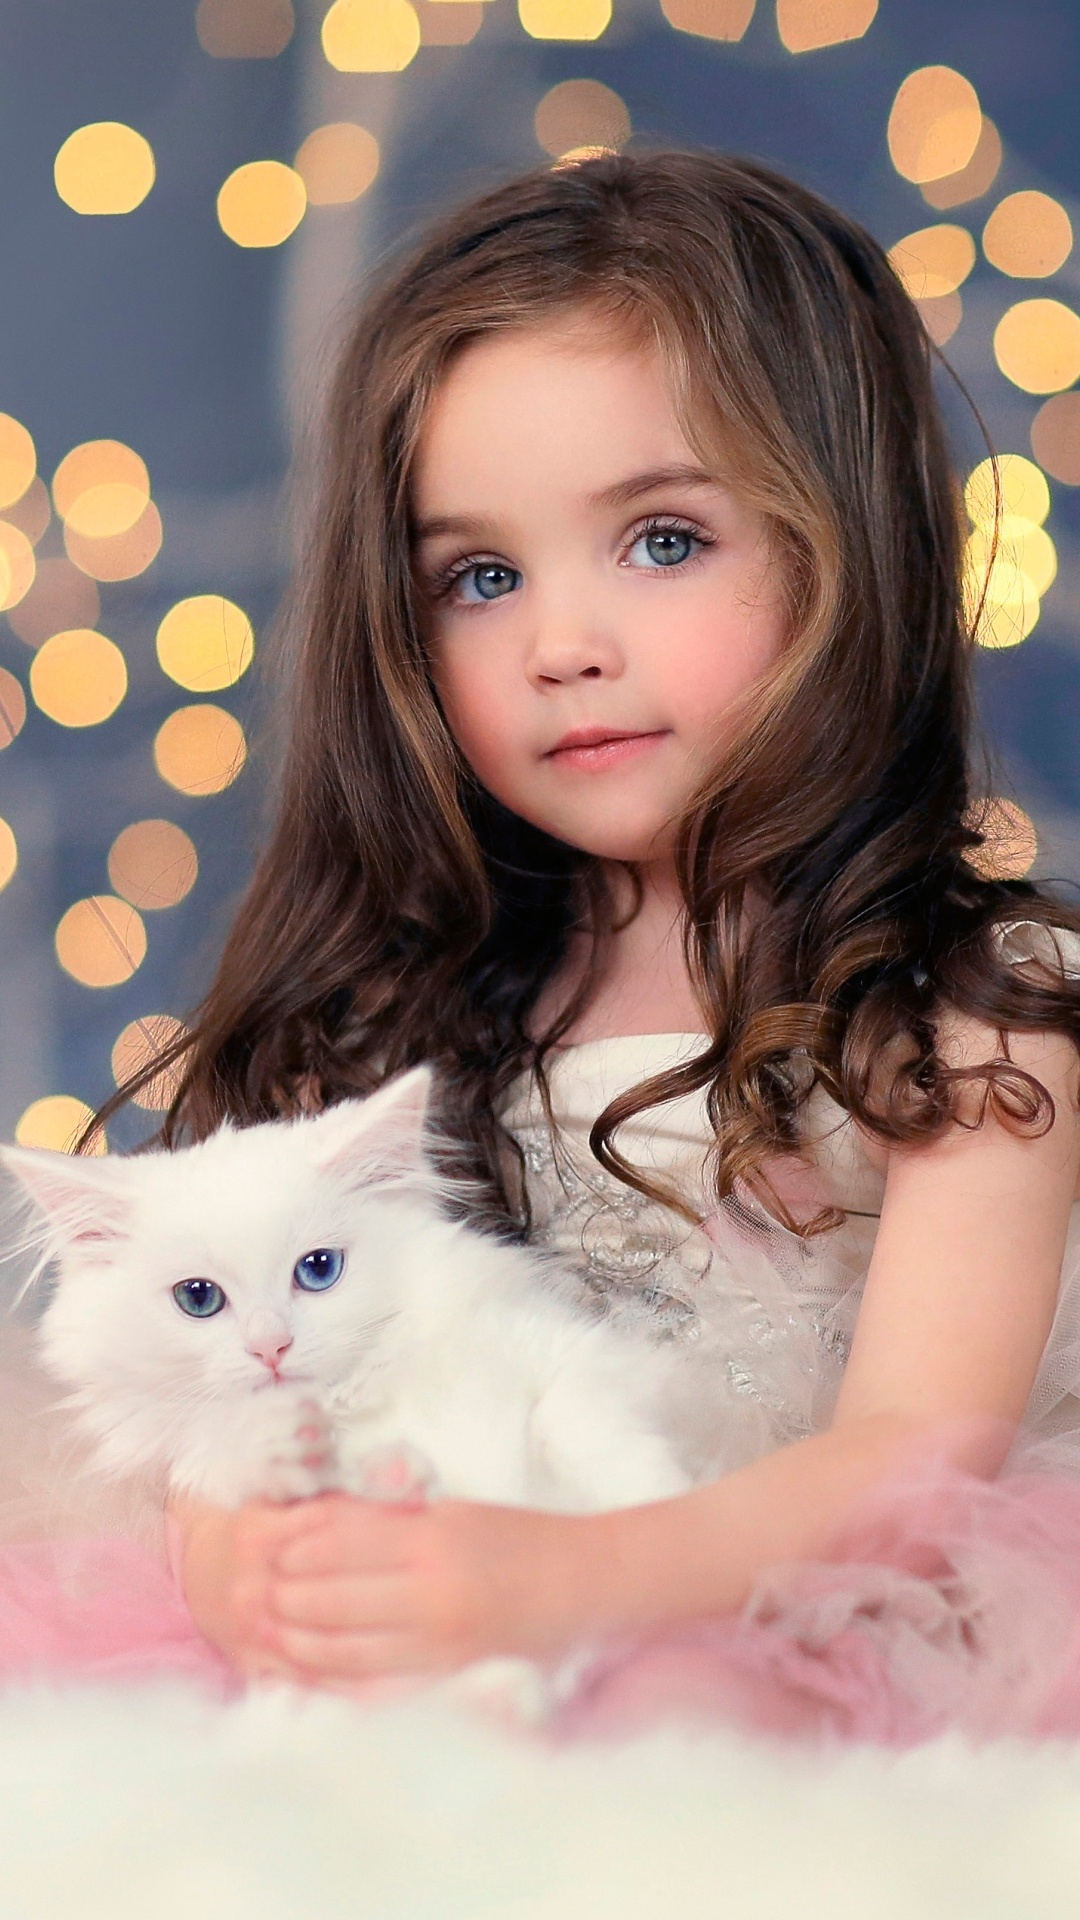 Cute Small Baby Girl Wallpapers Girl And Cat Kitten Wallpapers 1080x1920 566793